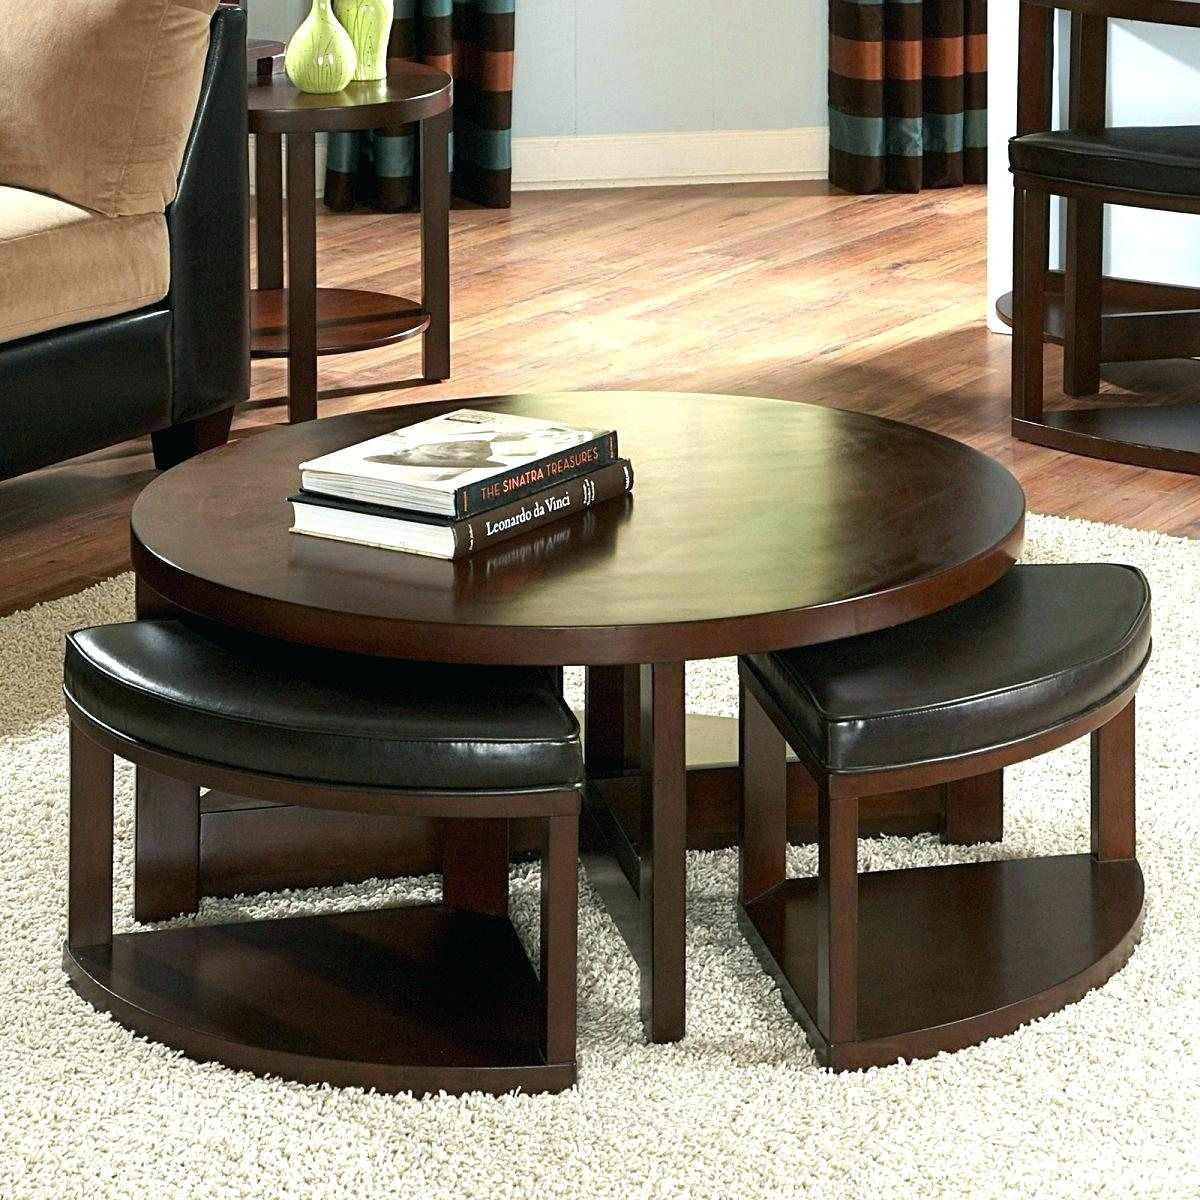 Round Glass Coffee Tables For Sale Thewkndedit Coffee Table With Seating Coffee Table Wood Coffee Table